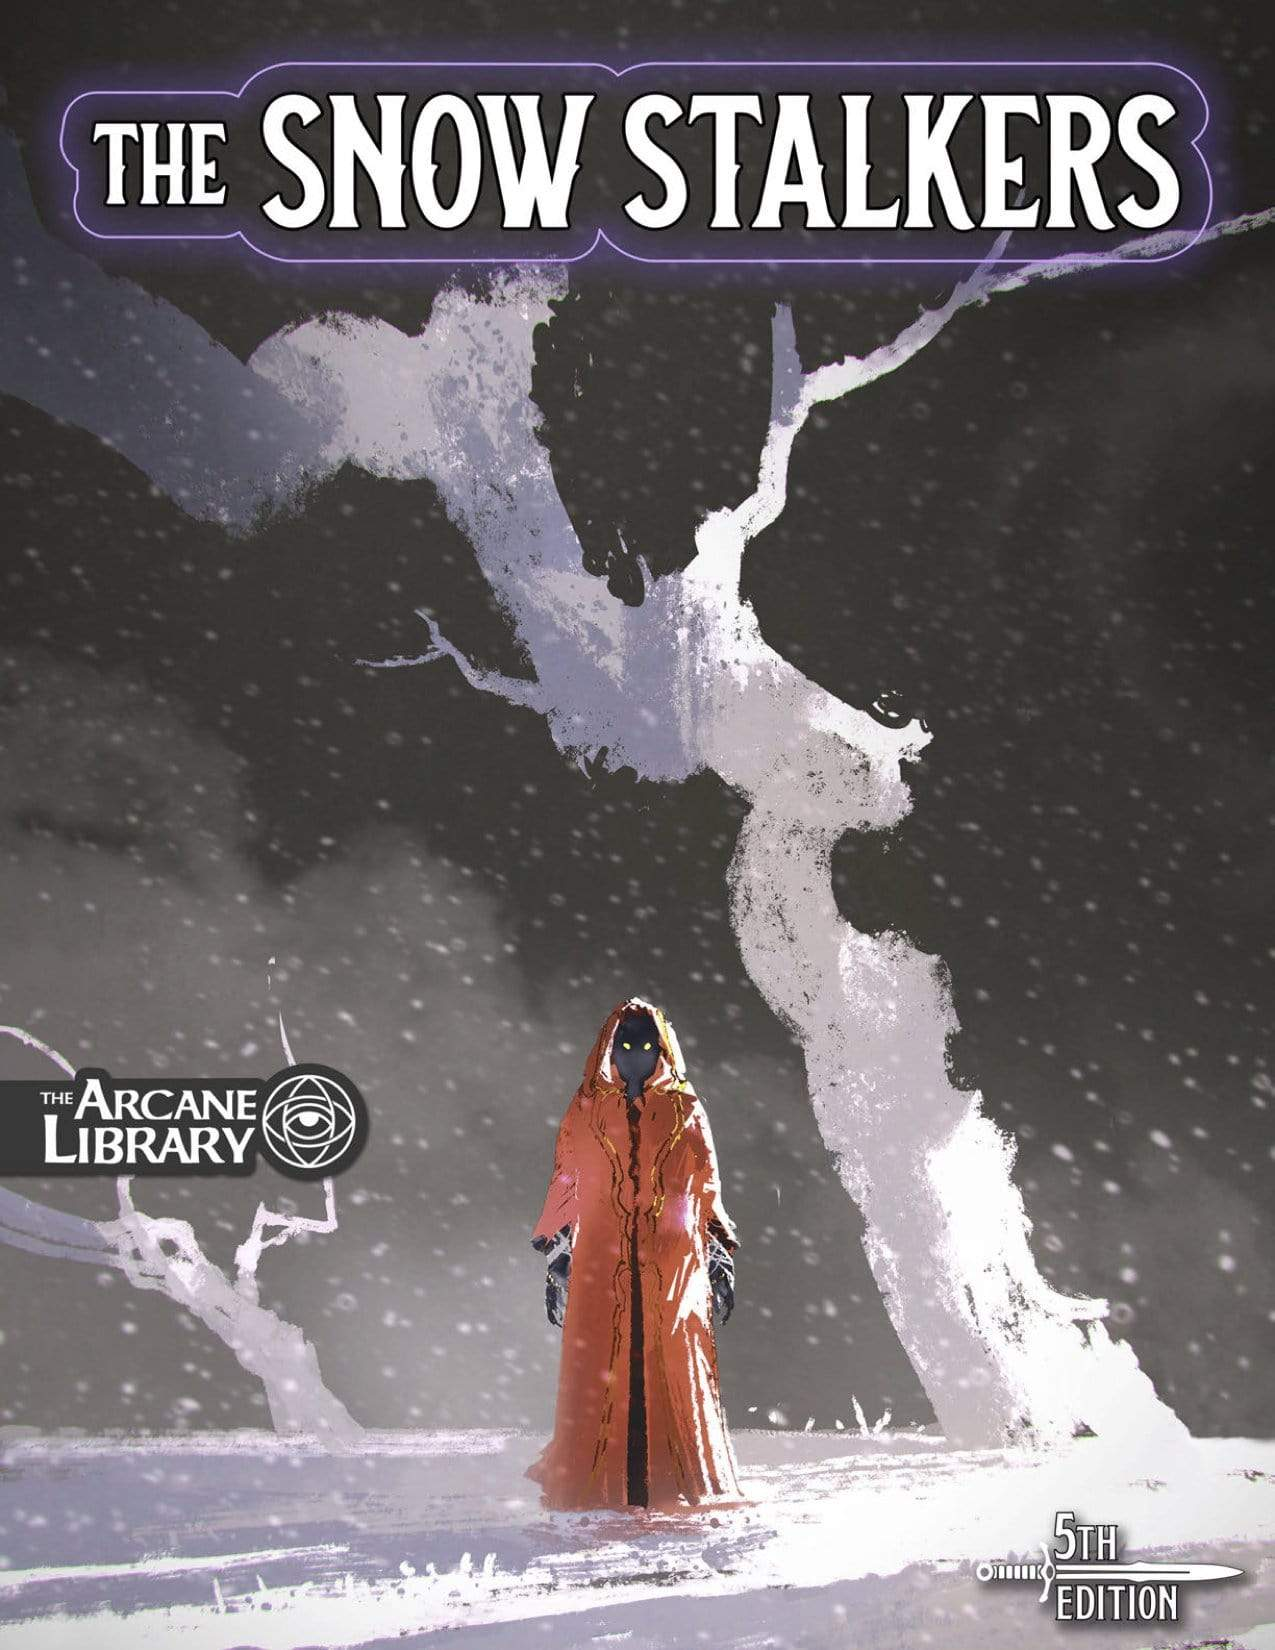 The Snow Stalkers cover